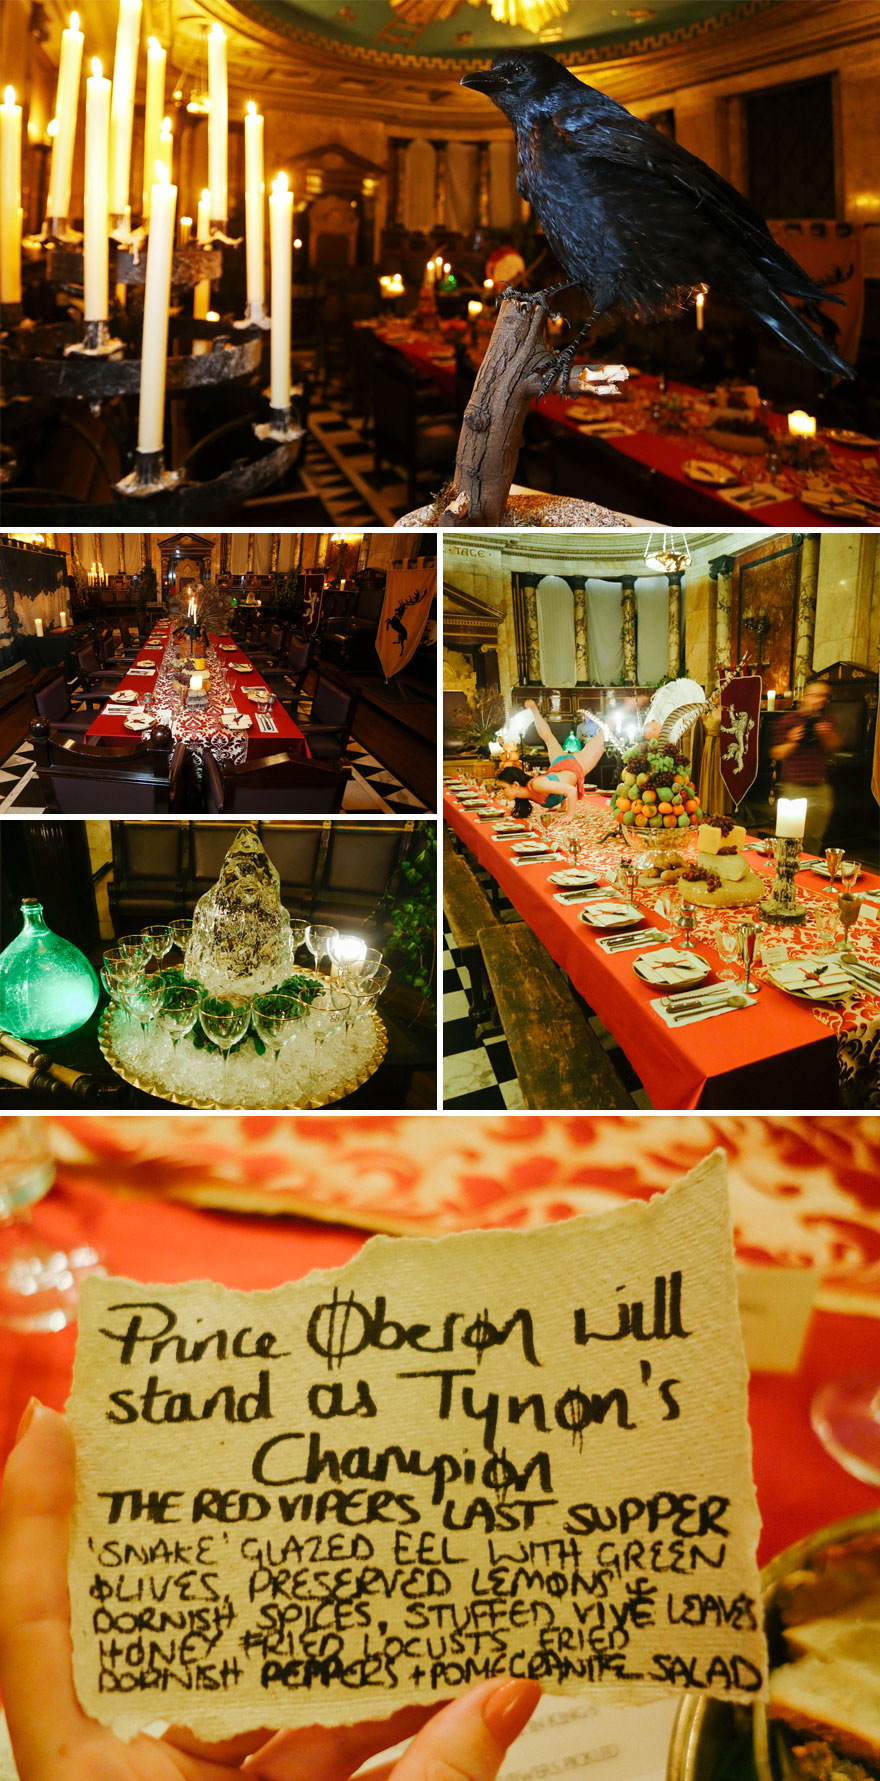 Game Of Thrones Feast, All Men Must Dine Pop-up Restaurant, London, UK